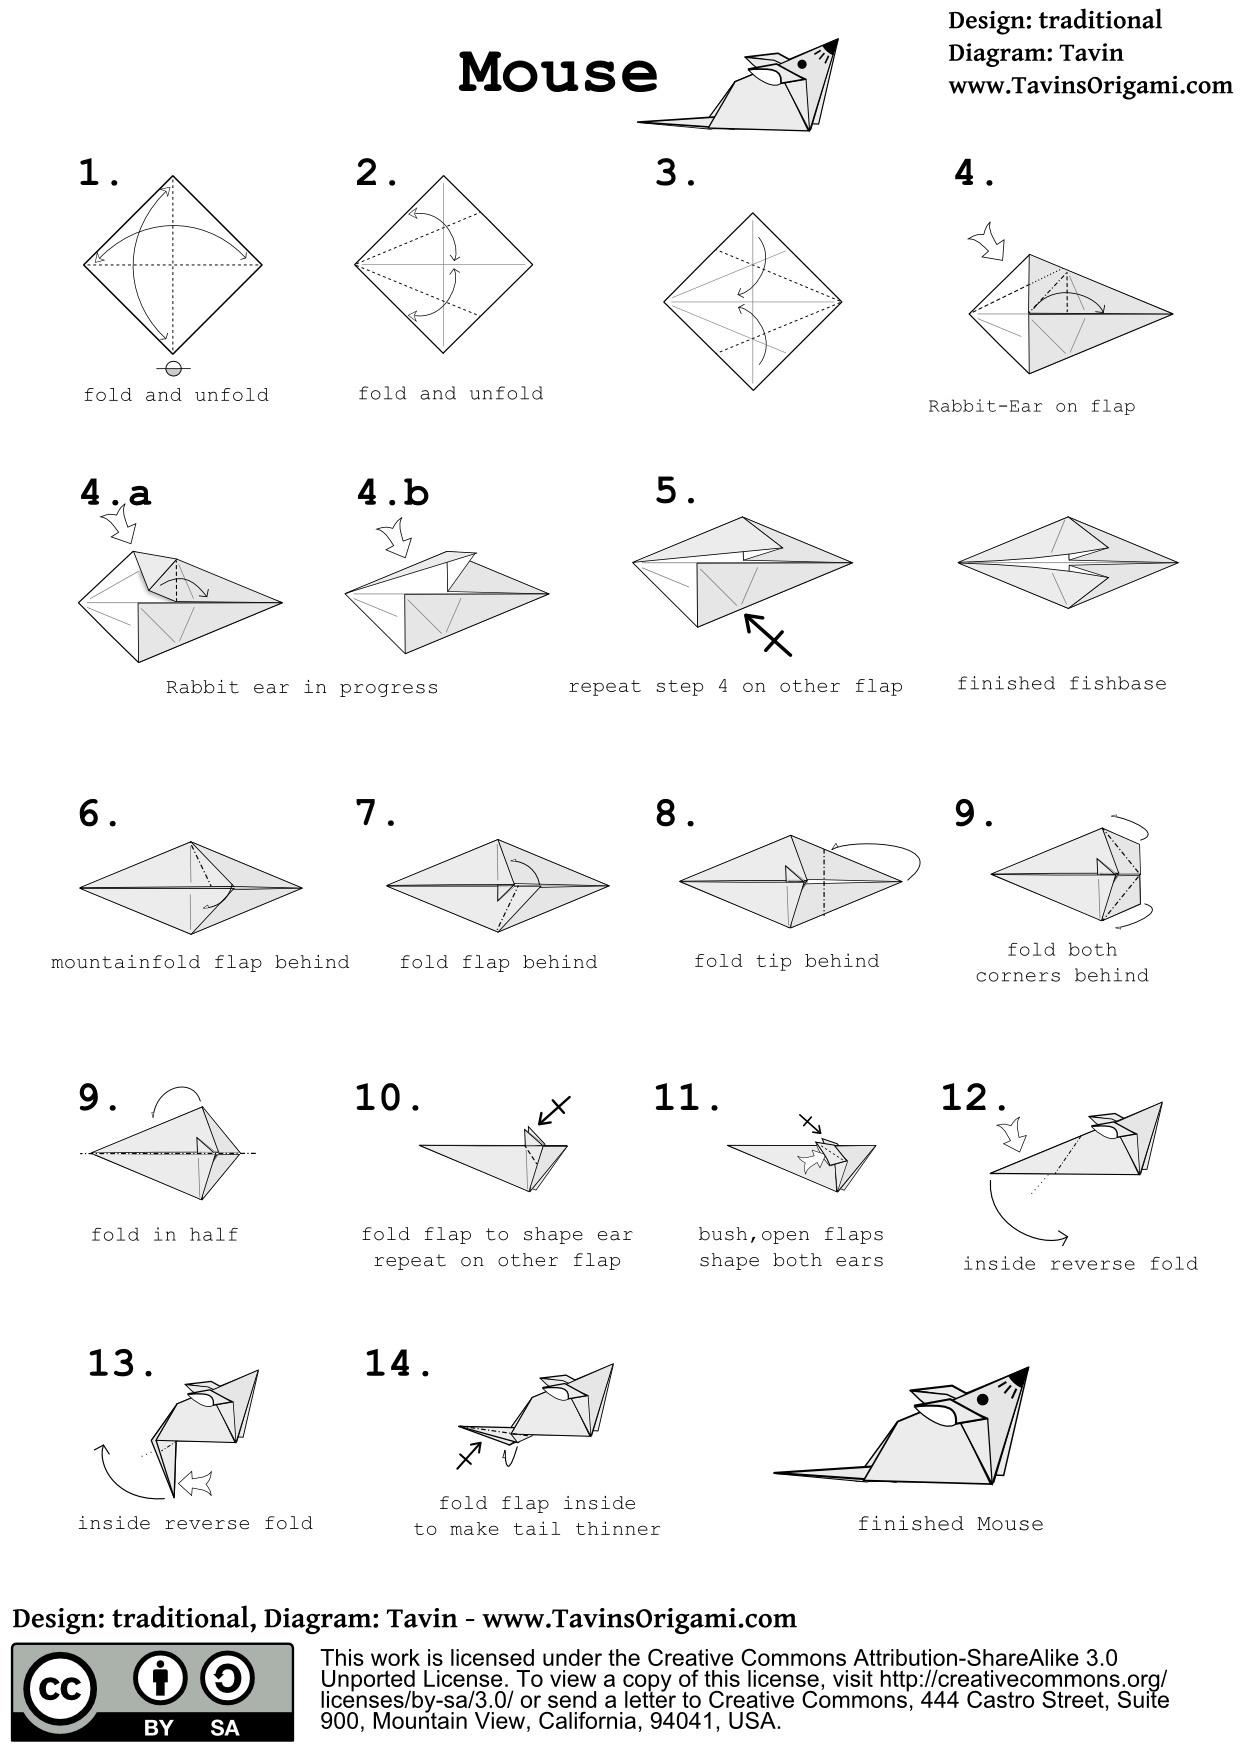 How to Fold a Simple    Origami    Mouse    Tavin s    Origami